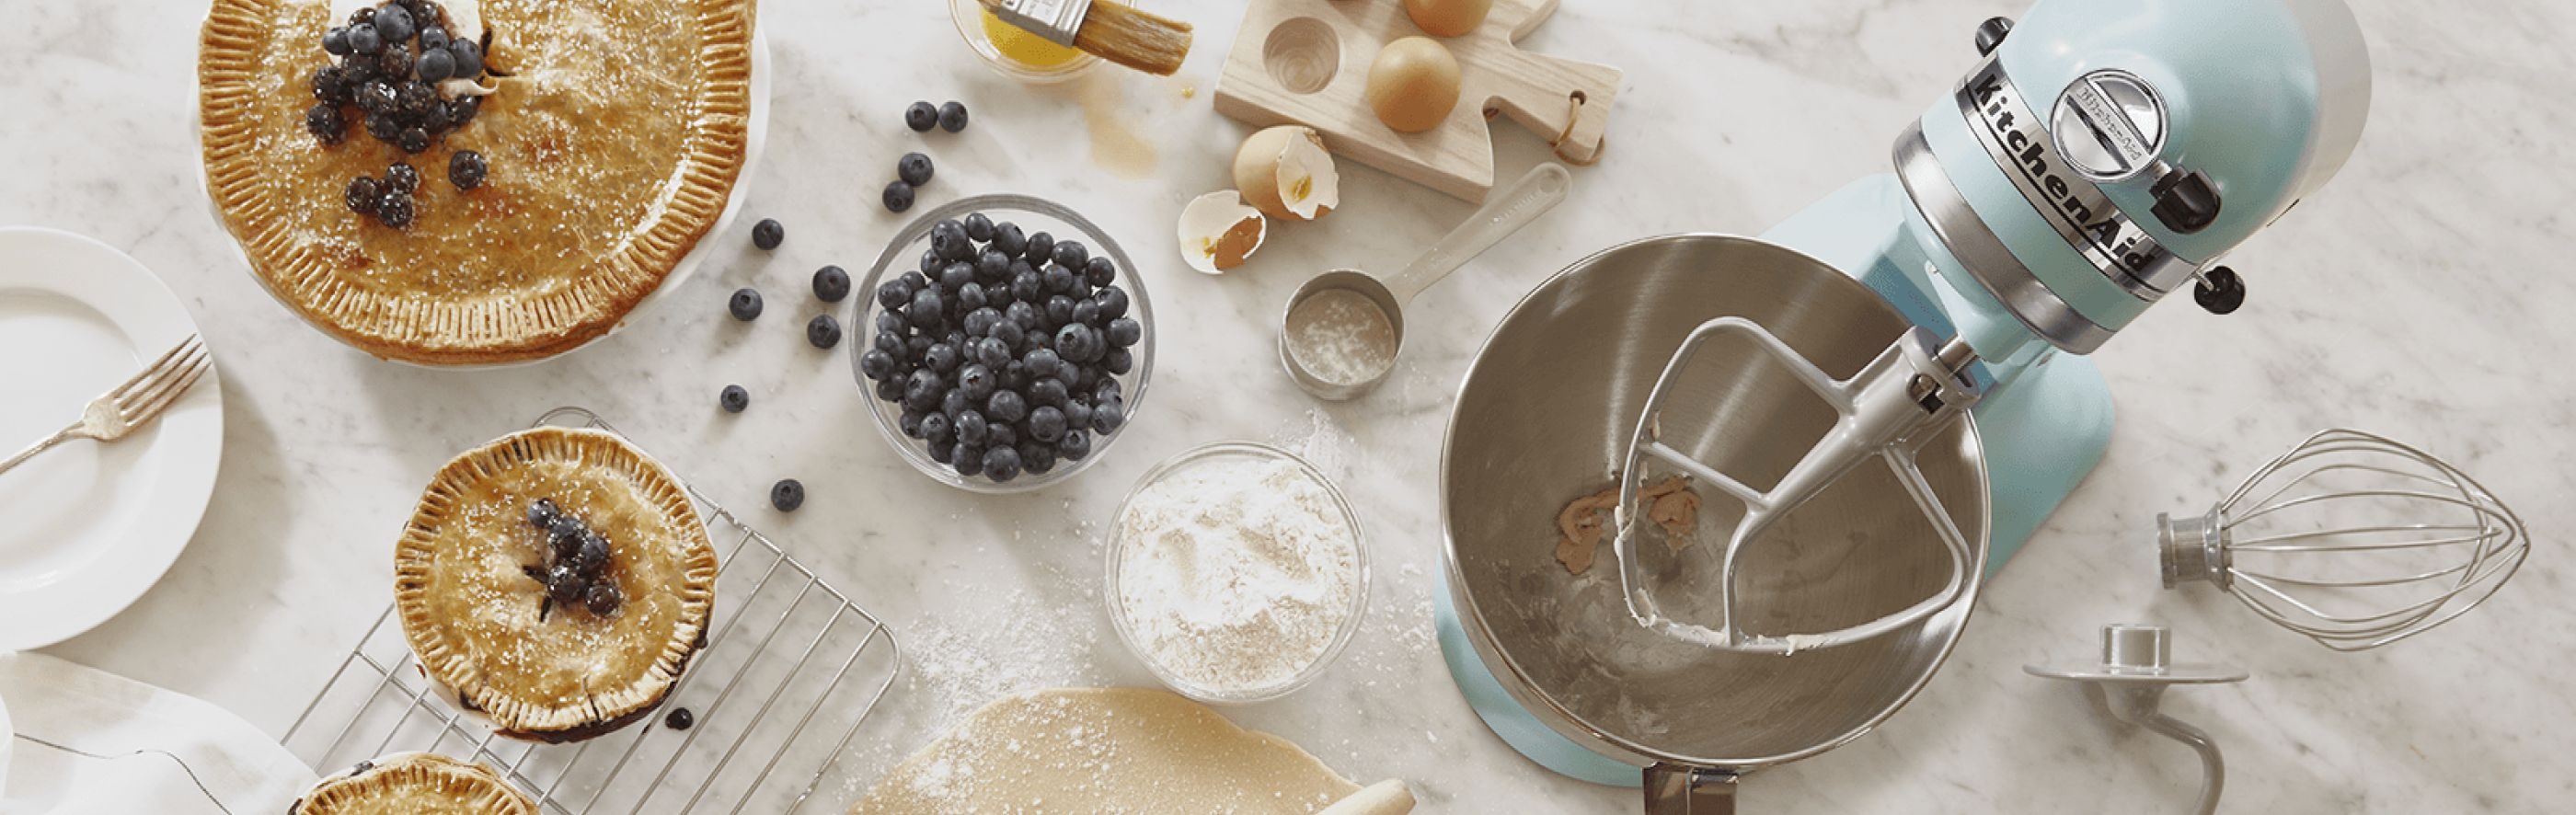 KitchenAid® stand mixer with blueberry pie, tarts, ingredients and homemade pie dough